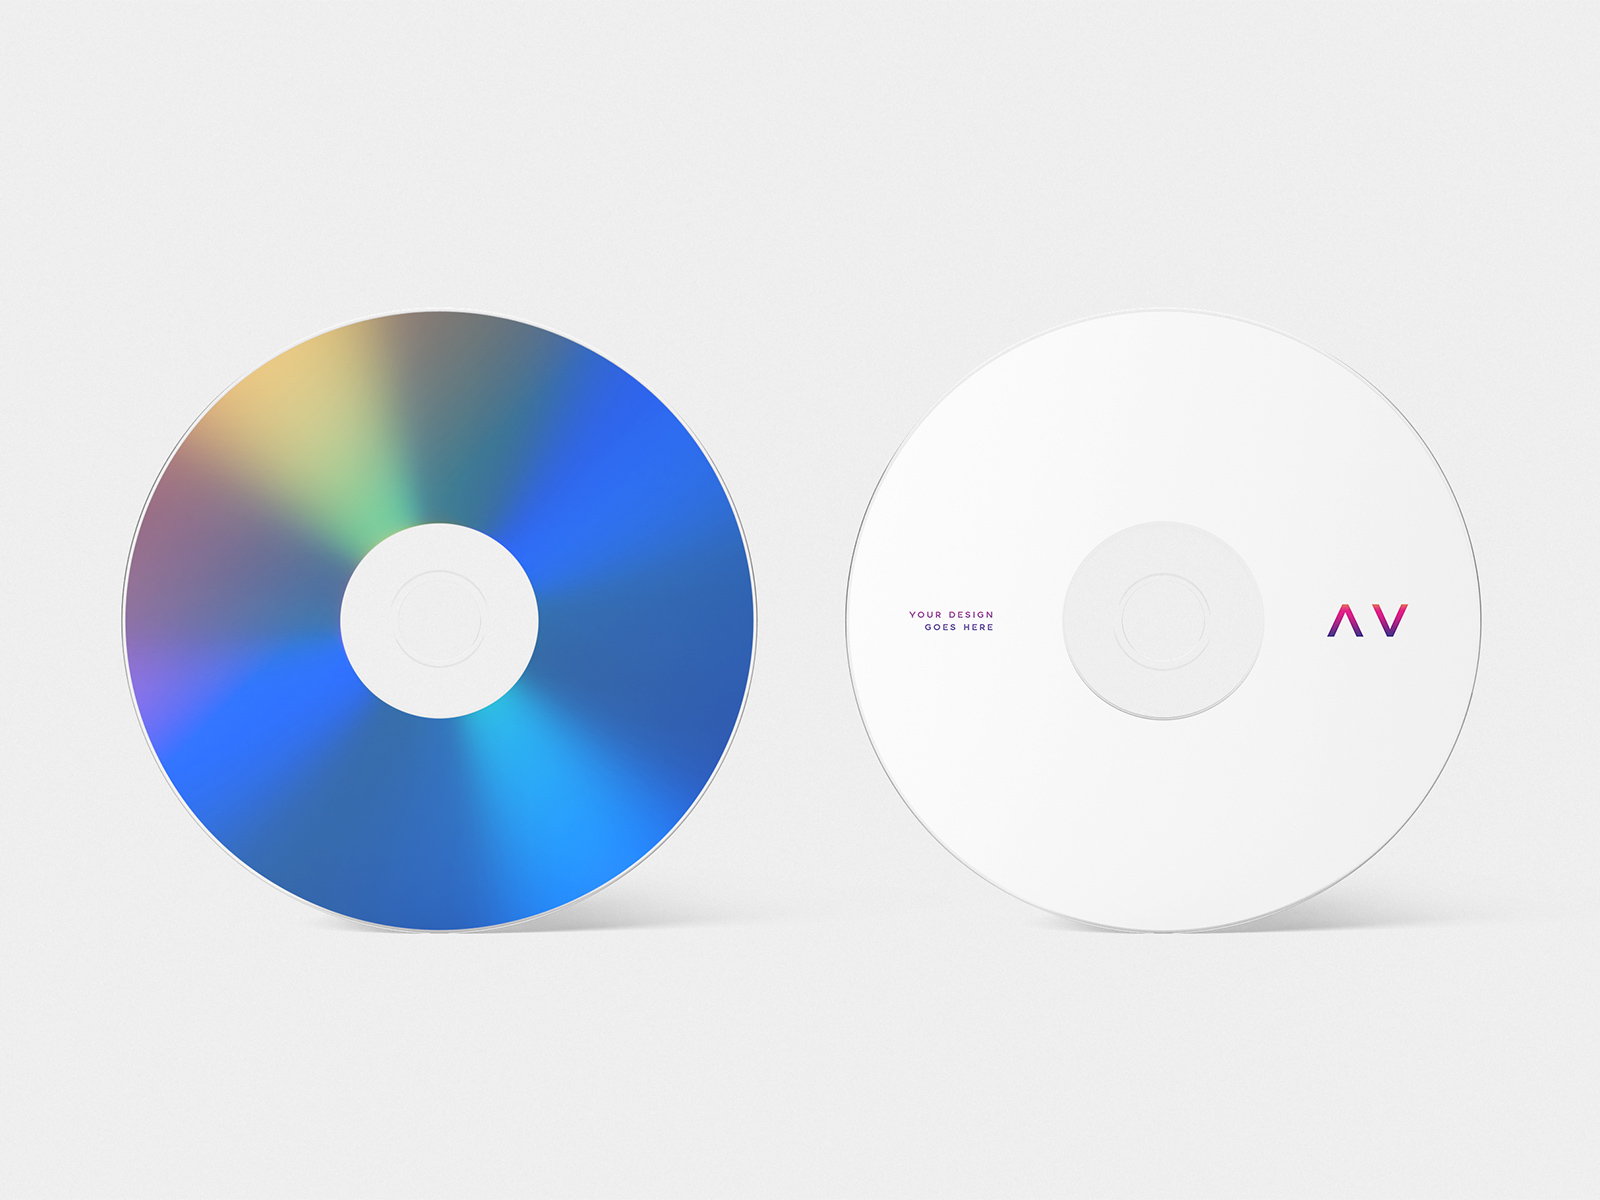 A must have premium quality dvd box mockup along with disc mockup set. Dvd Mockup Designs Themes Templates And Downloadable Graphic Elements On Dribbble